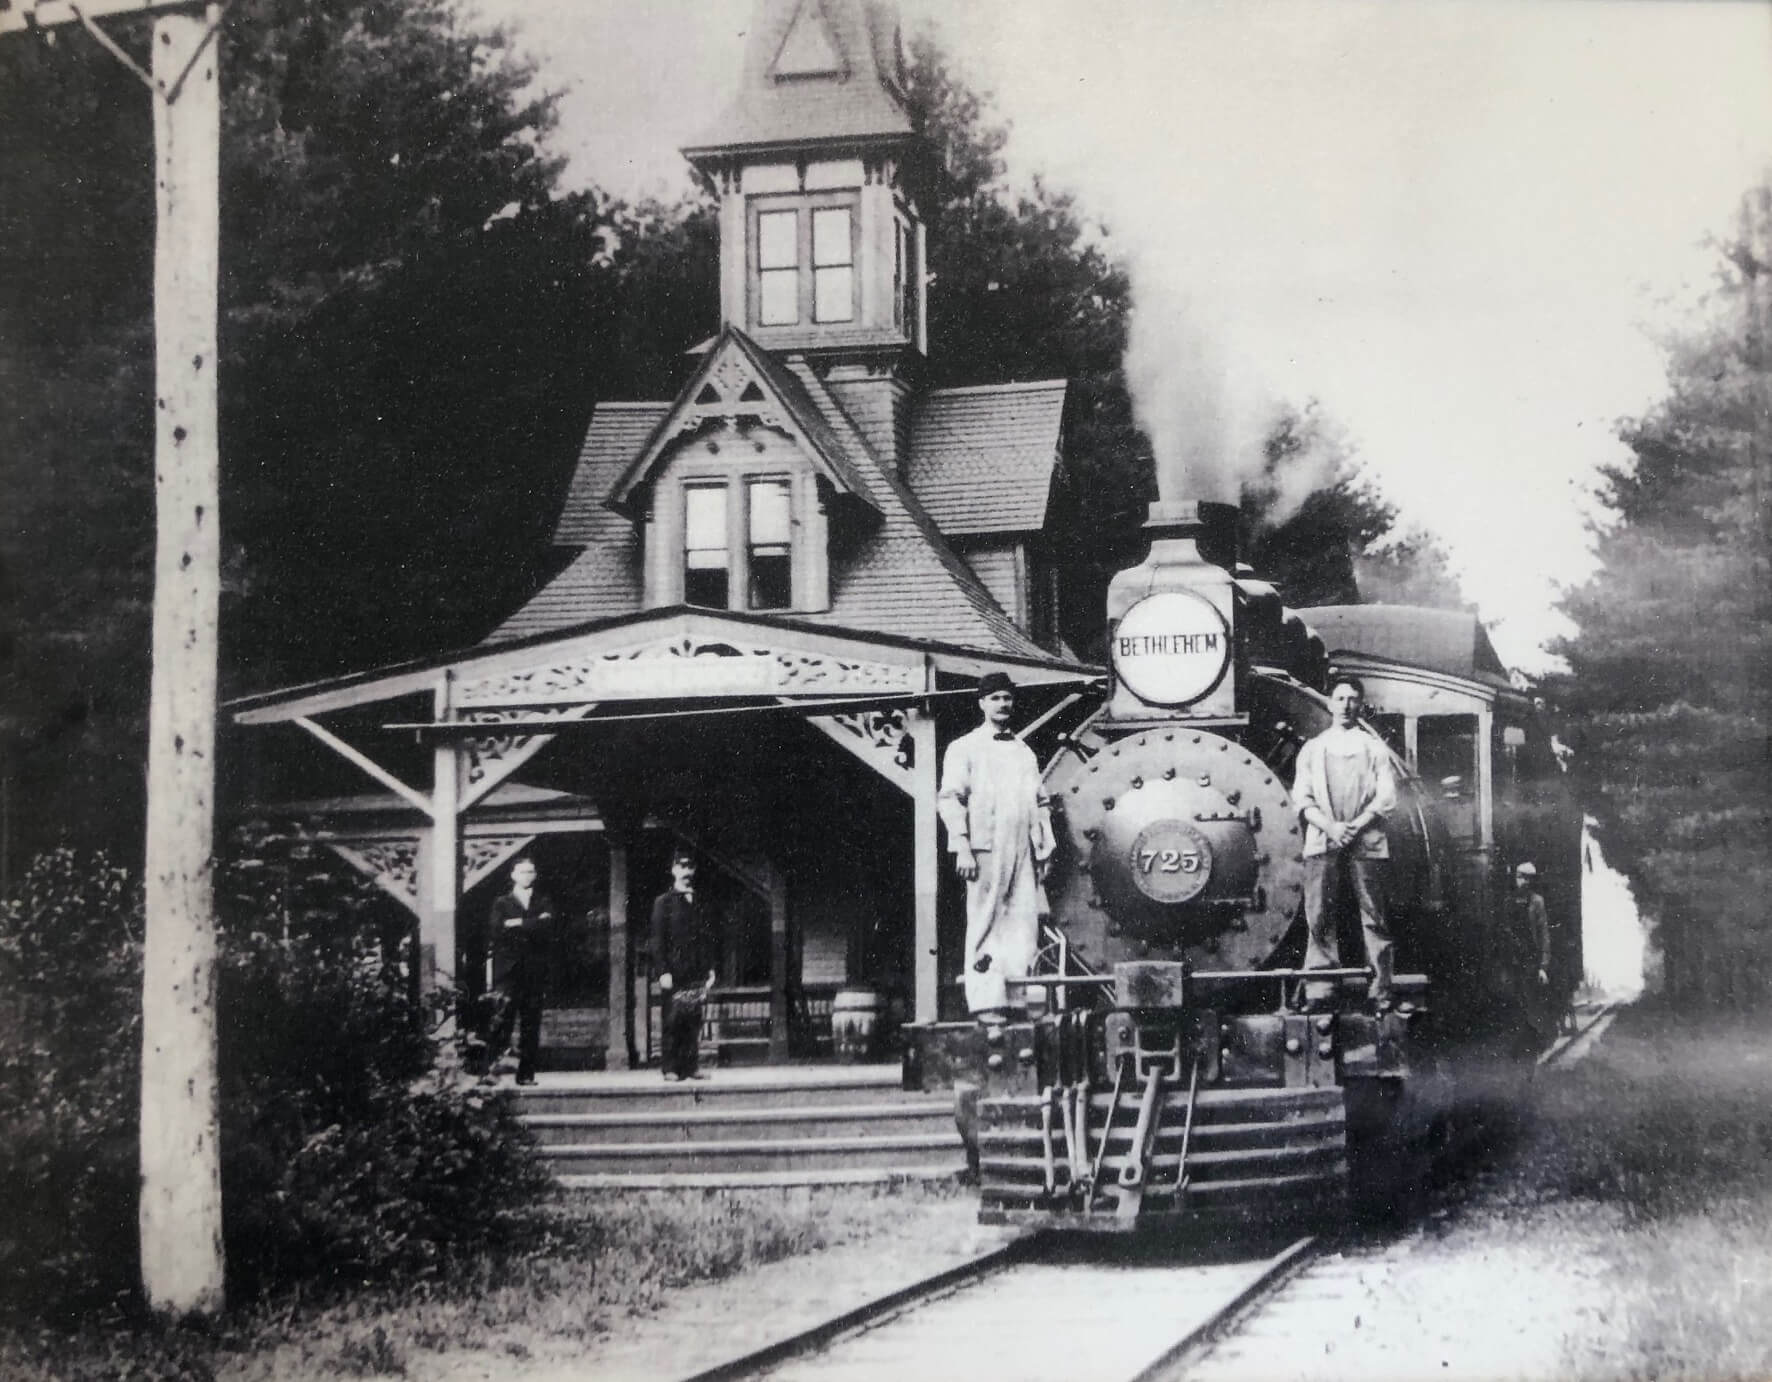 Maplewood Station in the 1800s